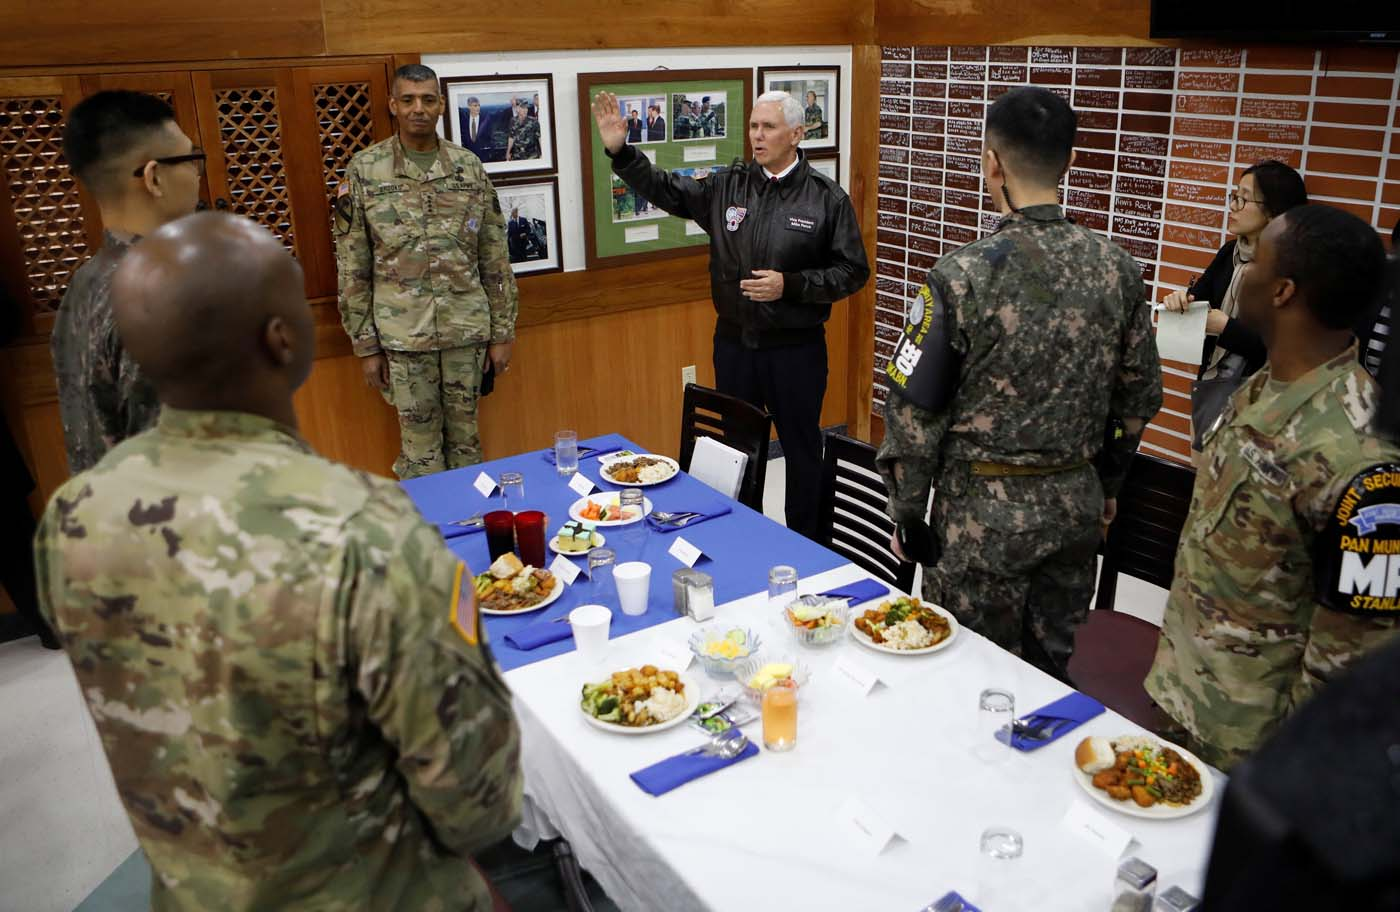 U.S. Vice President Mike Pence speaks during a meeting with U.S. and South Korean soldiers at Camp Bonifas near the truce village of Panmunjom in Paju South Korea